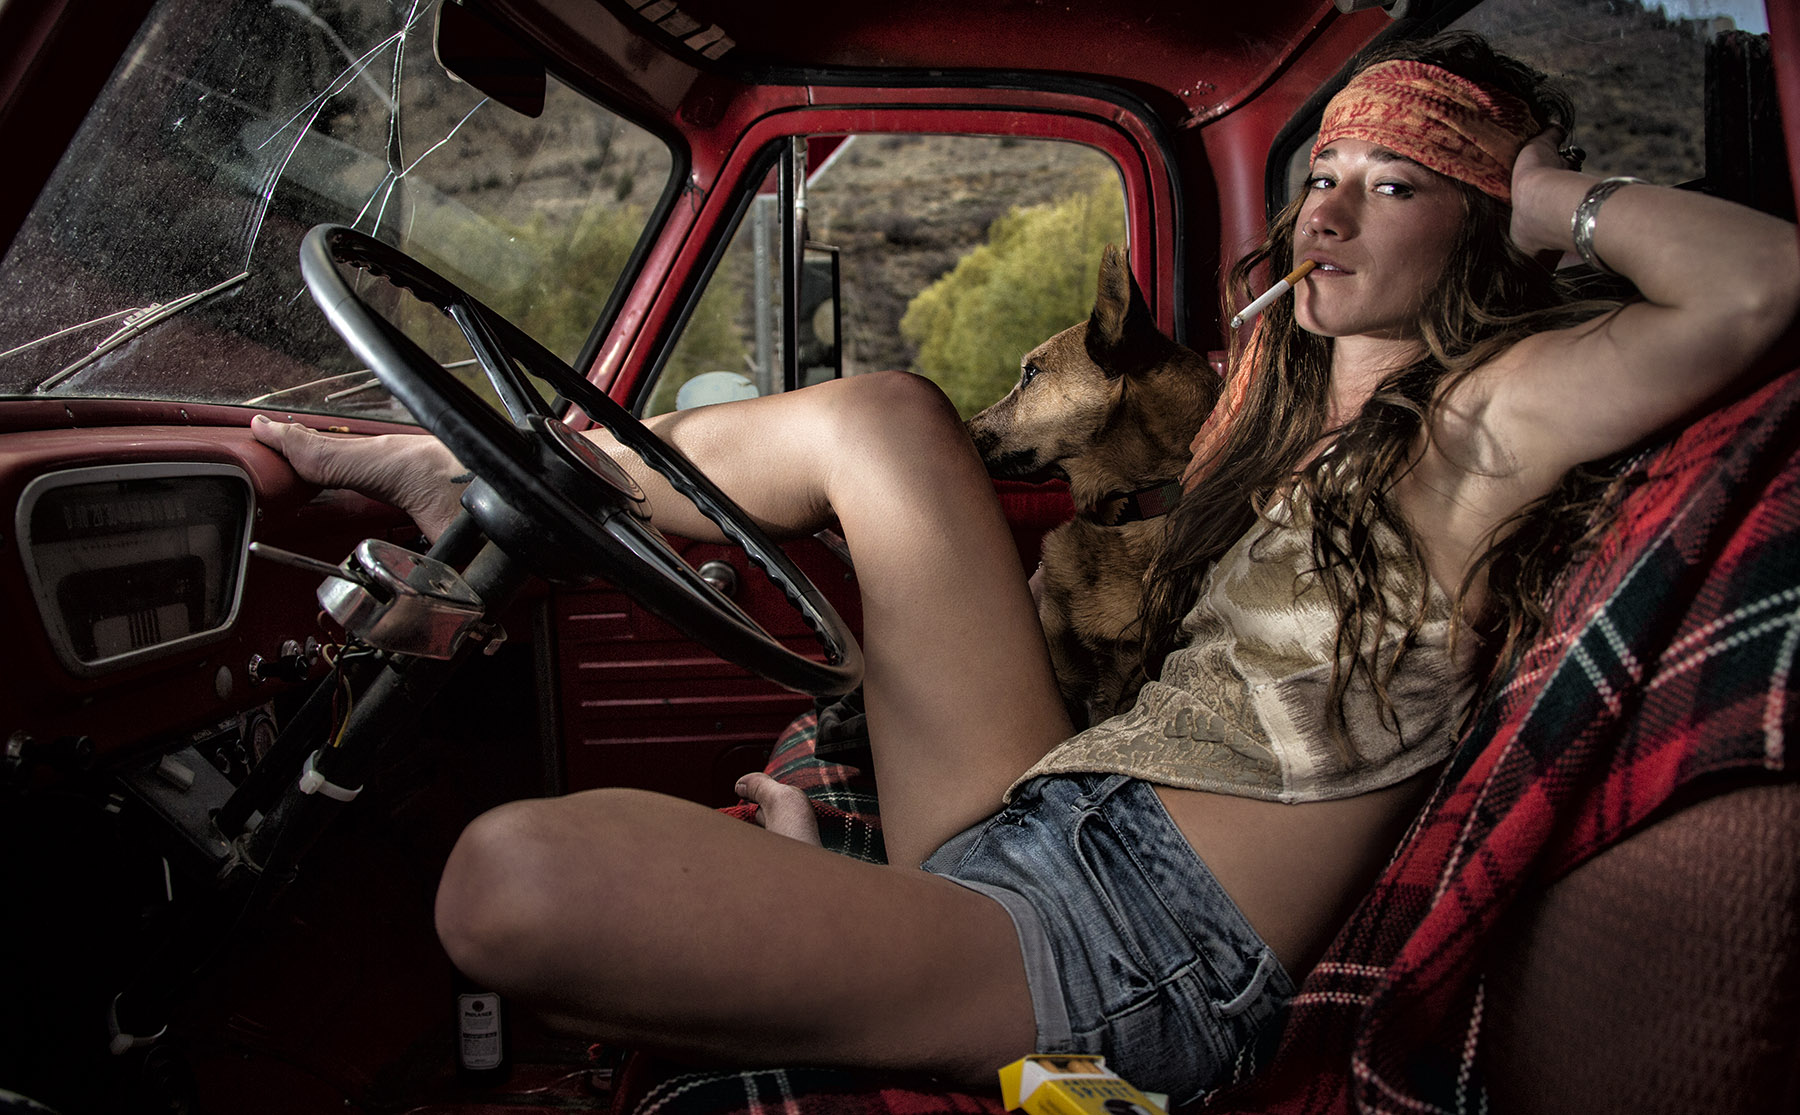 Hippie girl and dog in old truck